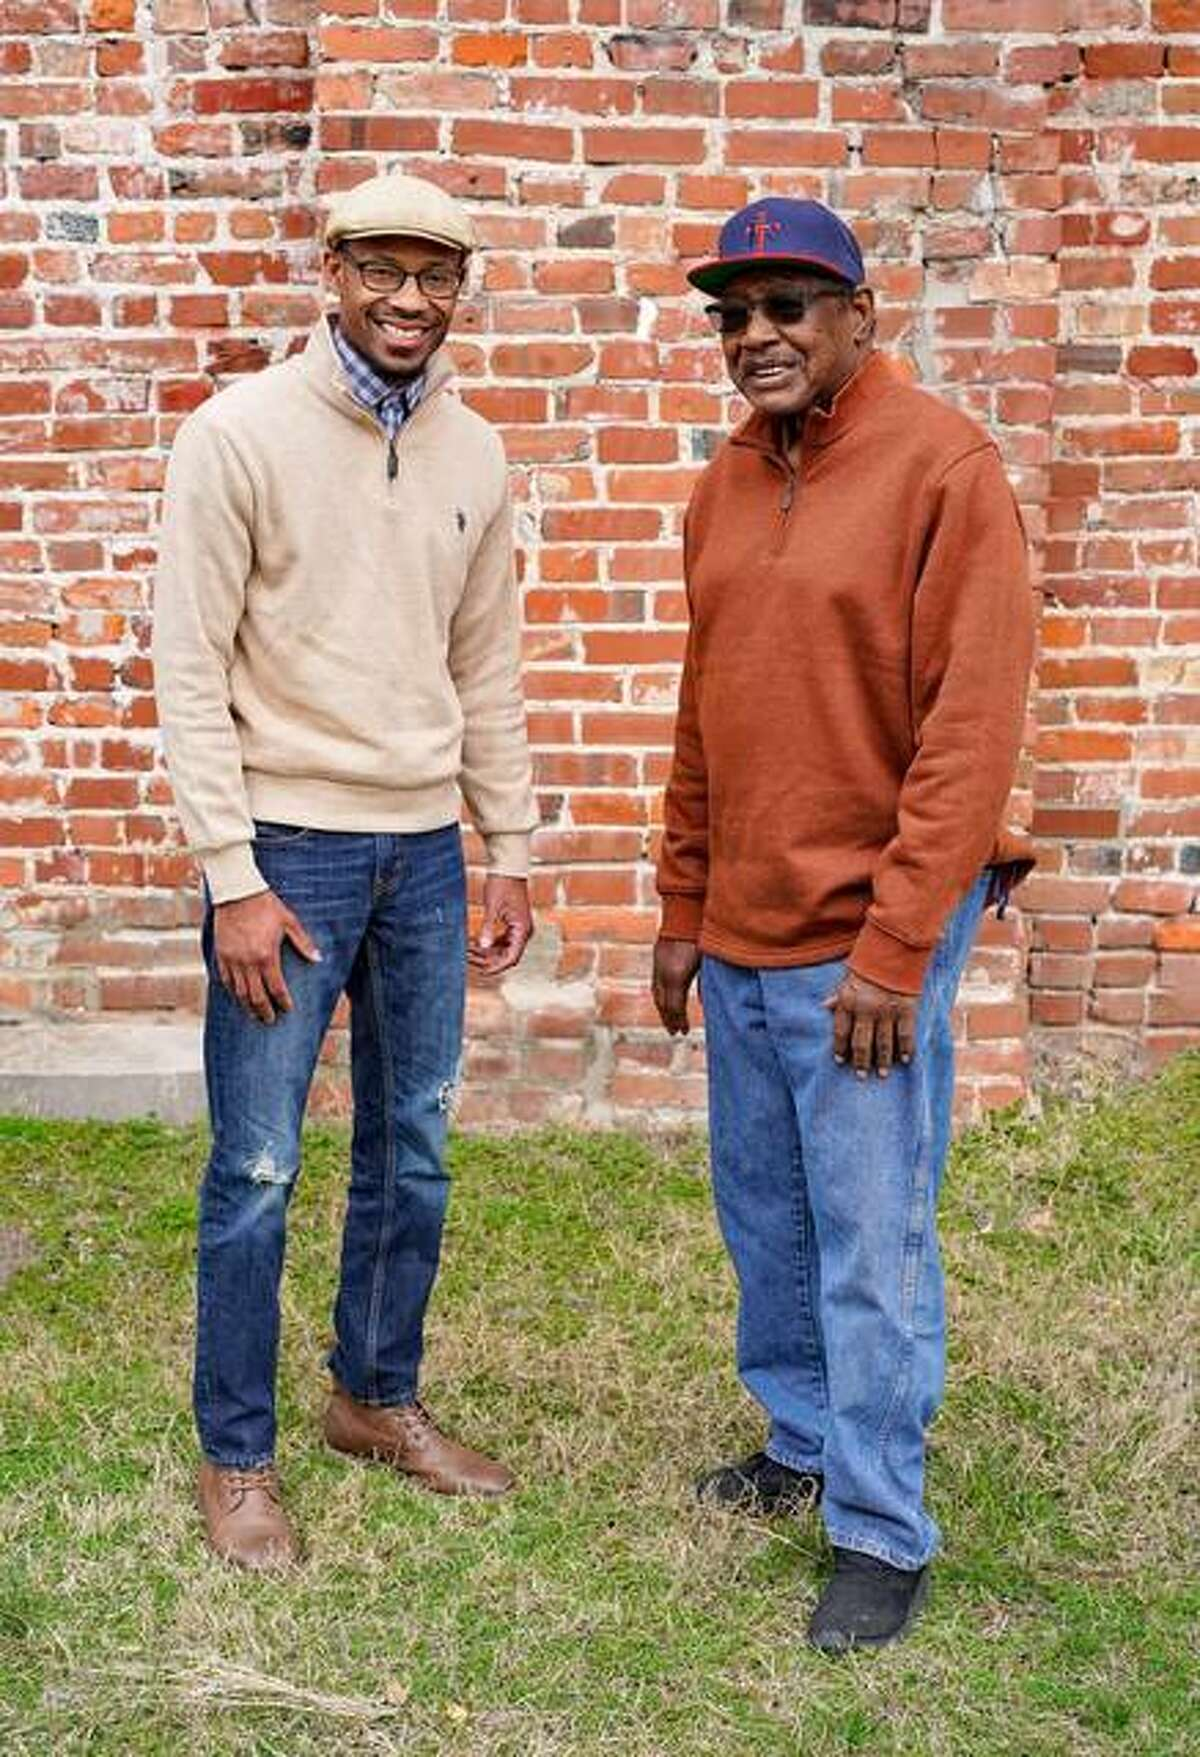 Jason Harrison and Willie Franklin are among the more than 30 Alton residents featured in Untold Black Stories of Alton.